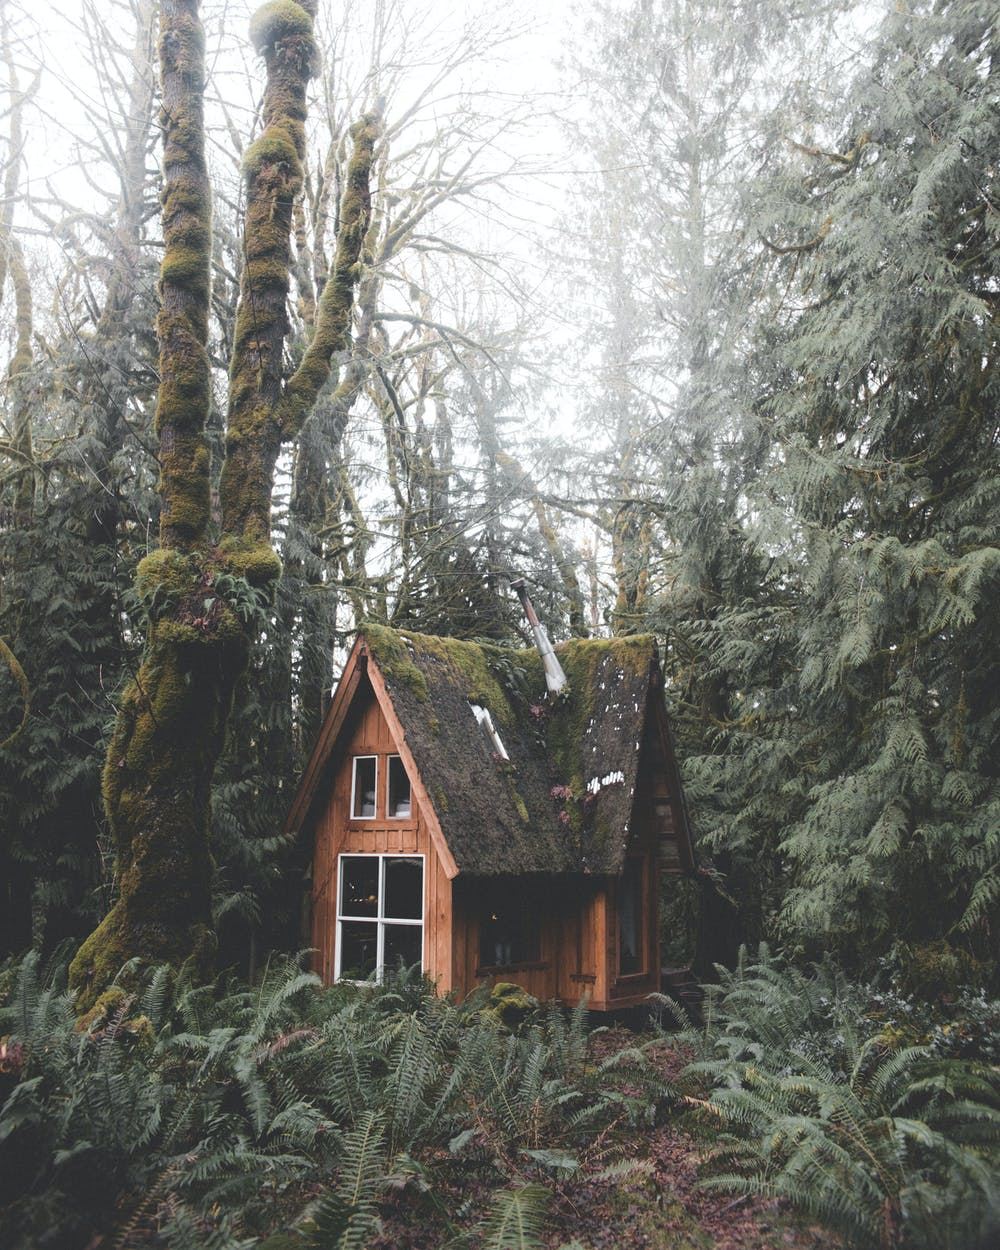 Wooden house in the forest. | Photo: Pexels